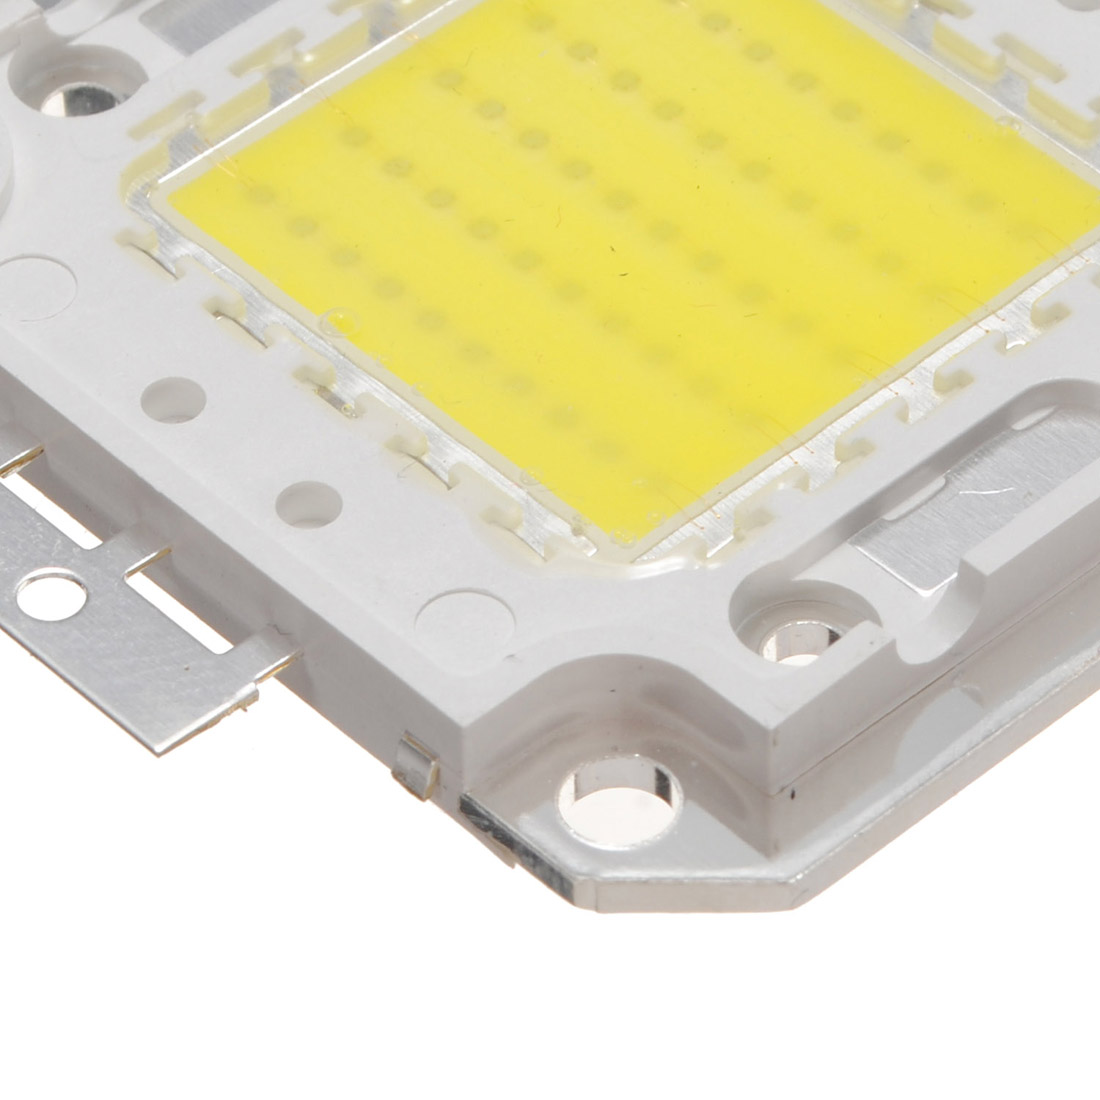 W lm pure warm white high bright led light lamp chip